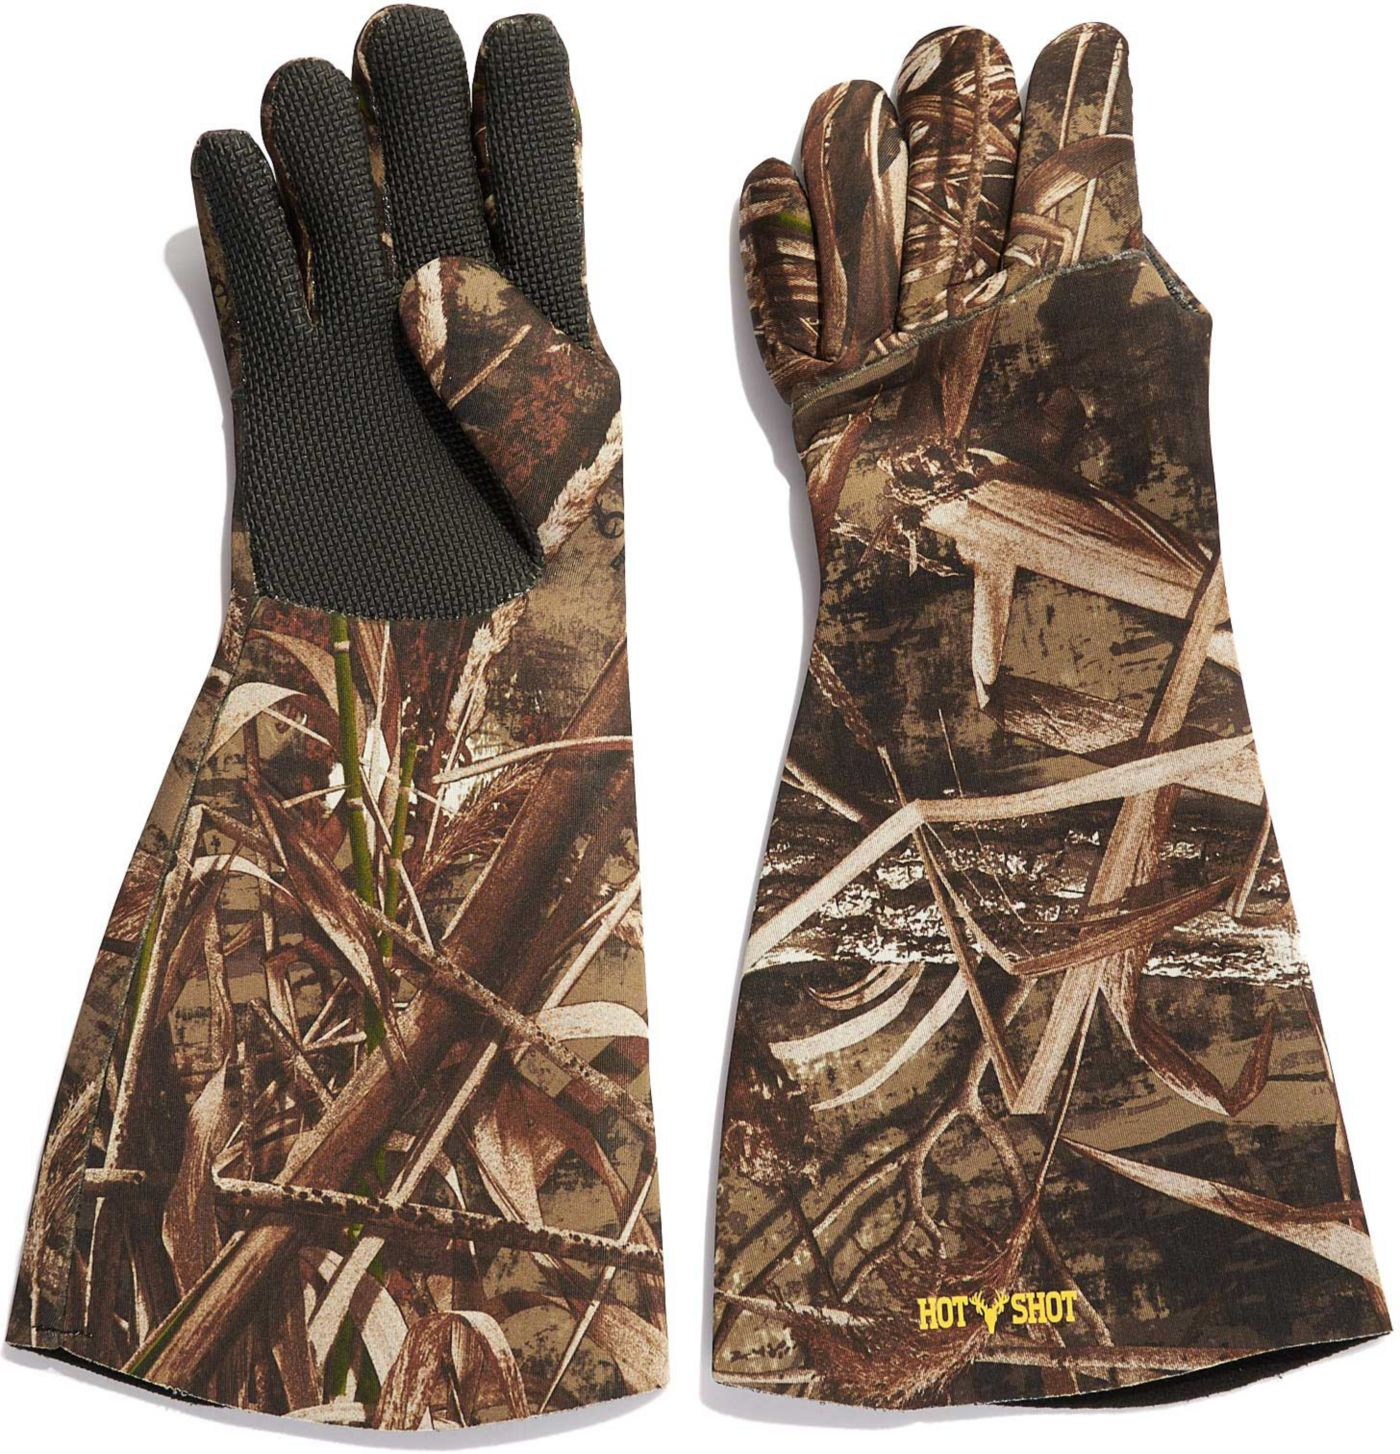 Jacob Ash Men's Neoprene Decoy Glove